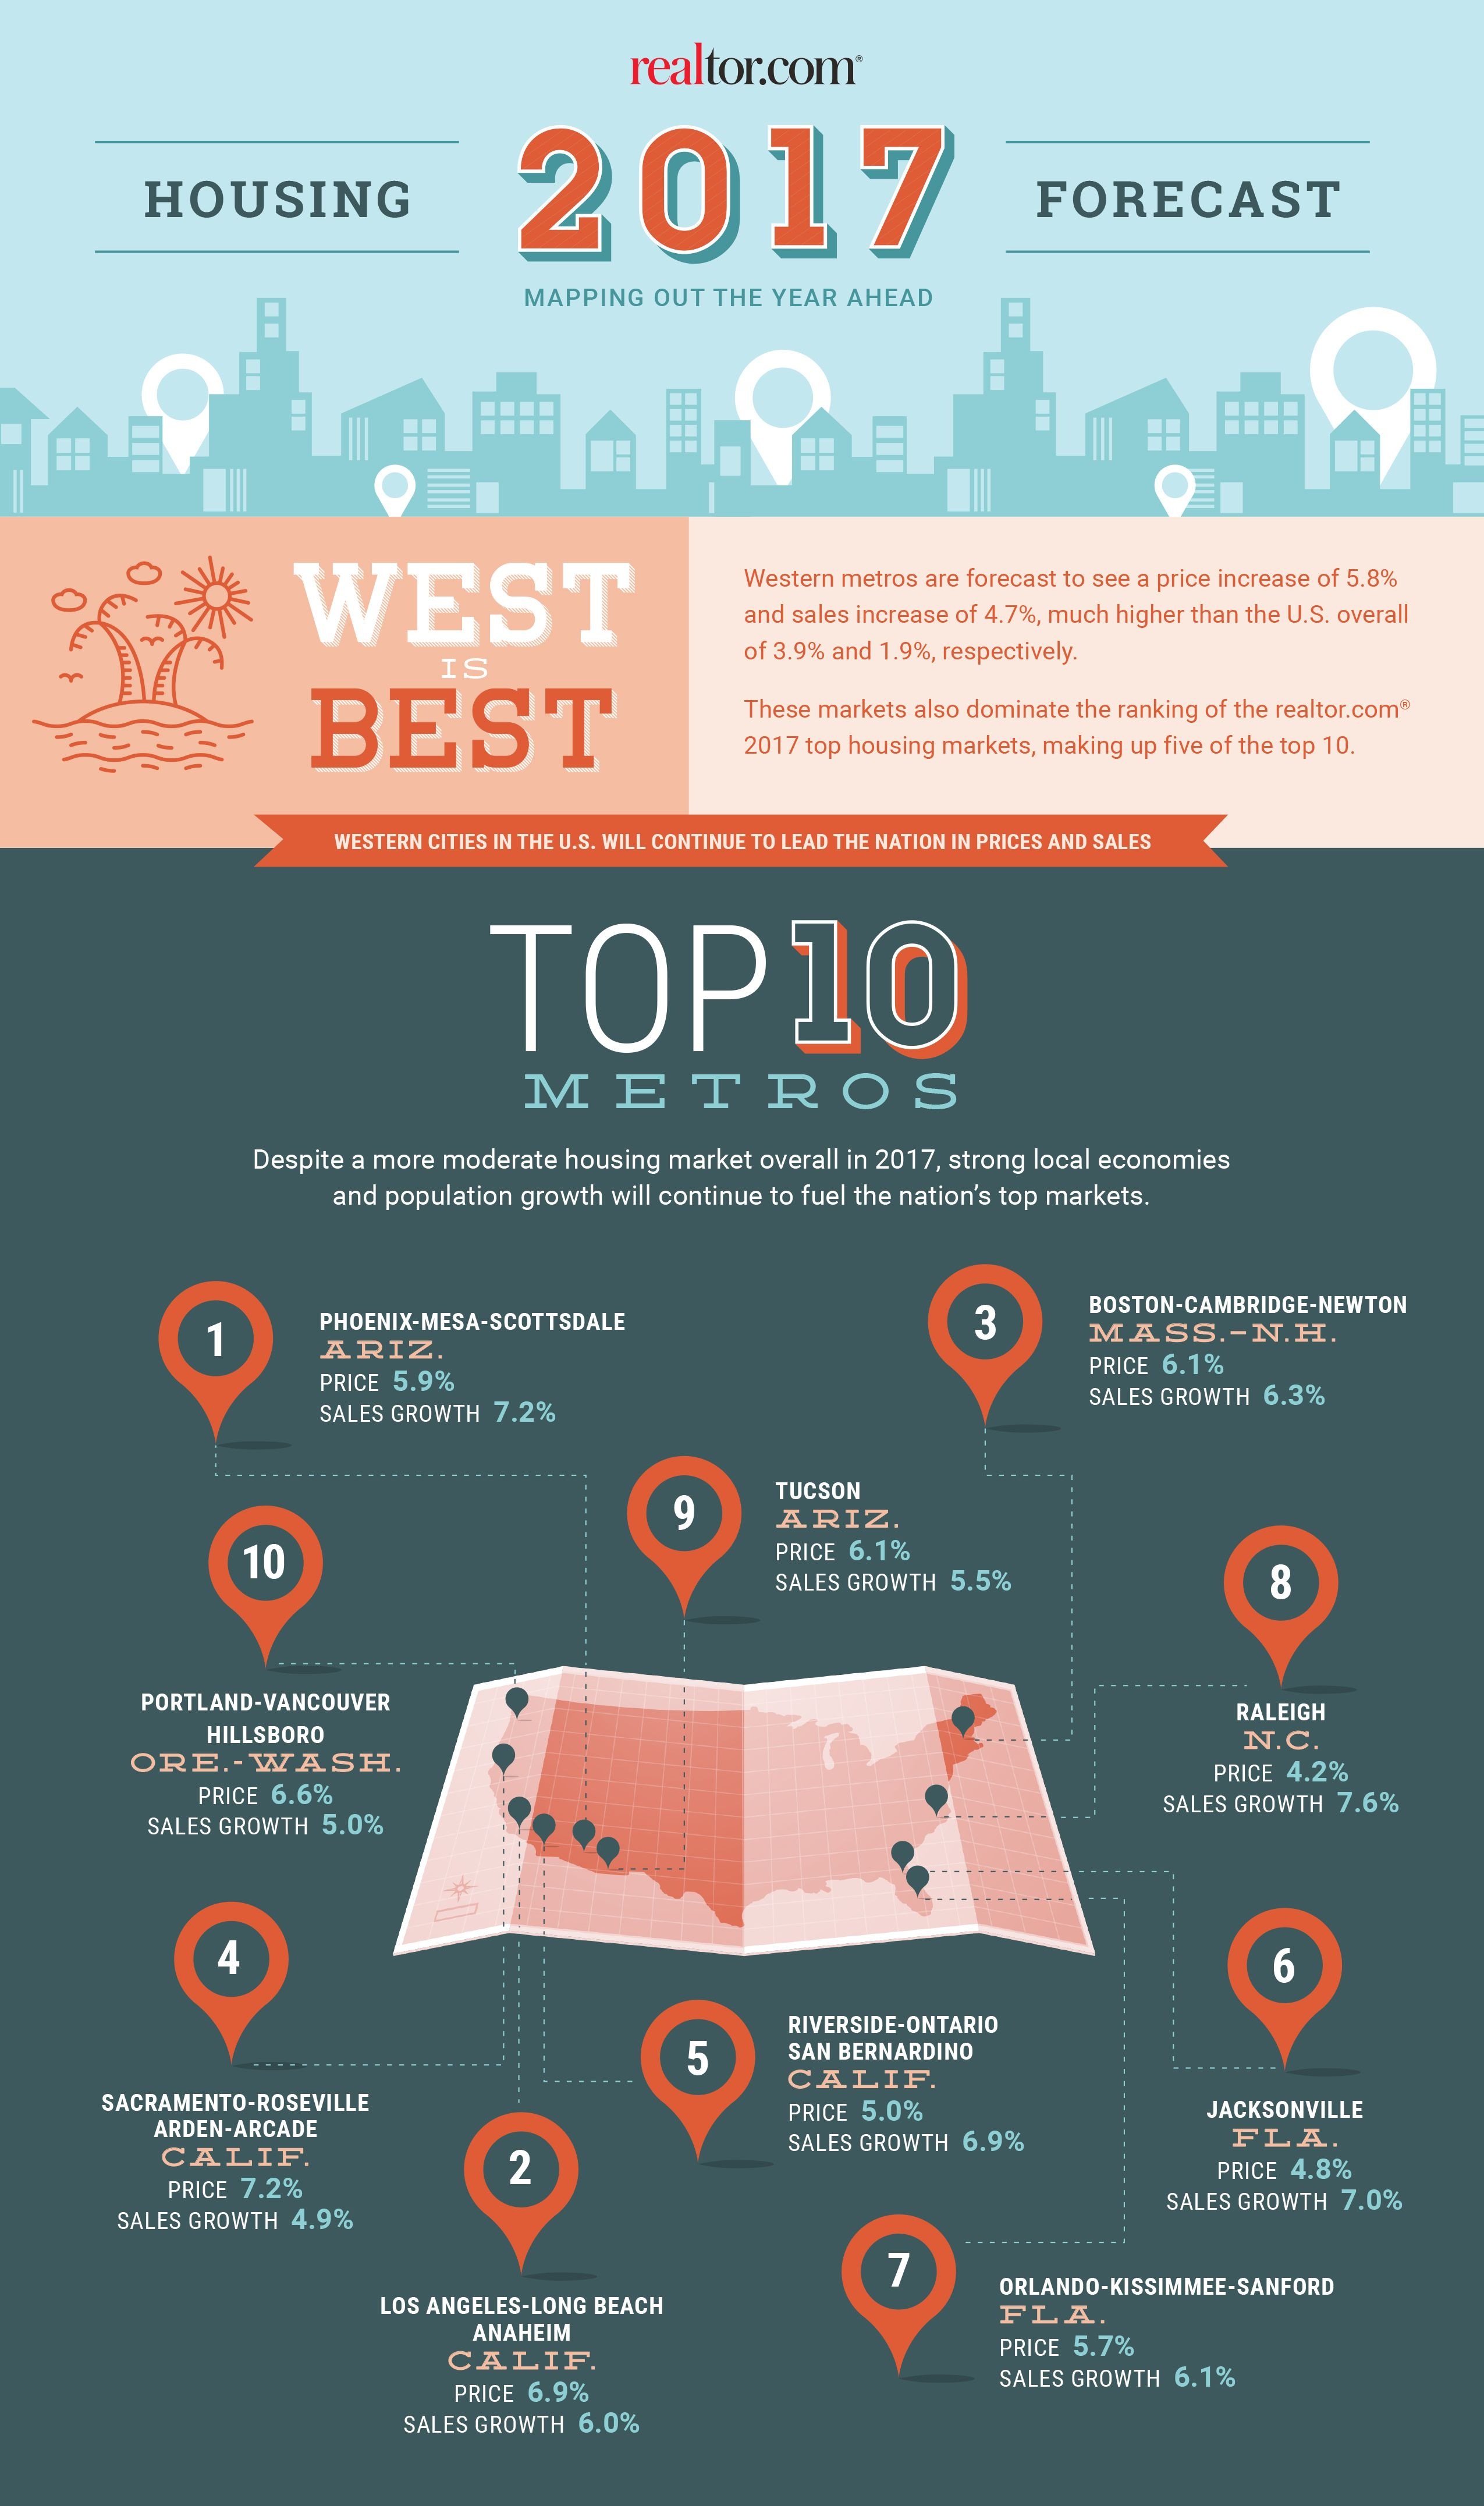 top real estate markets for 2017 the west leads the way real